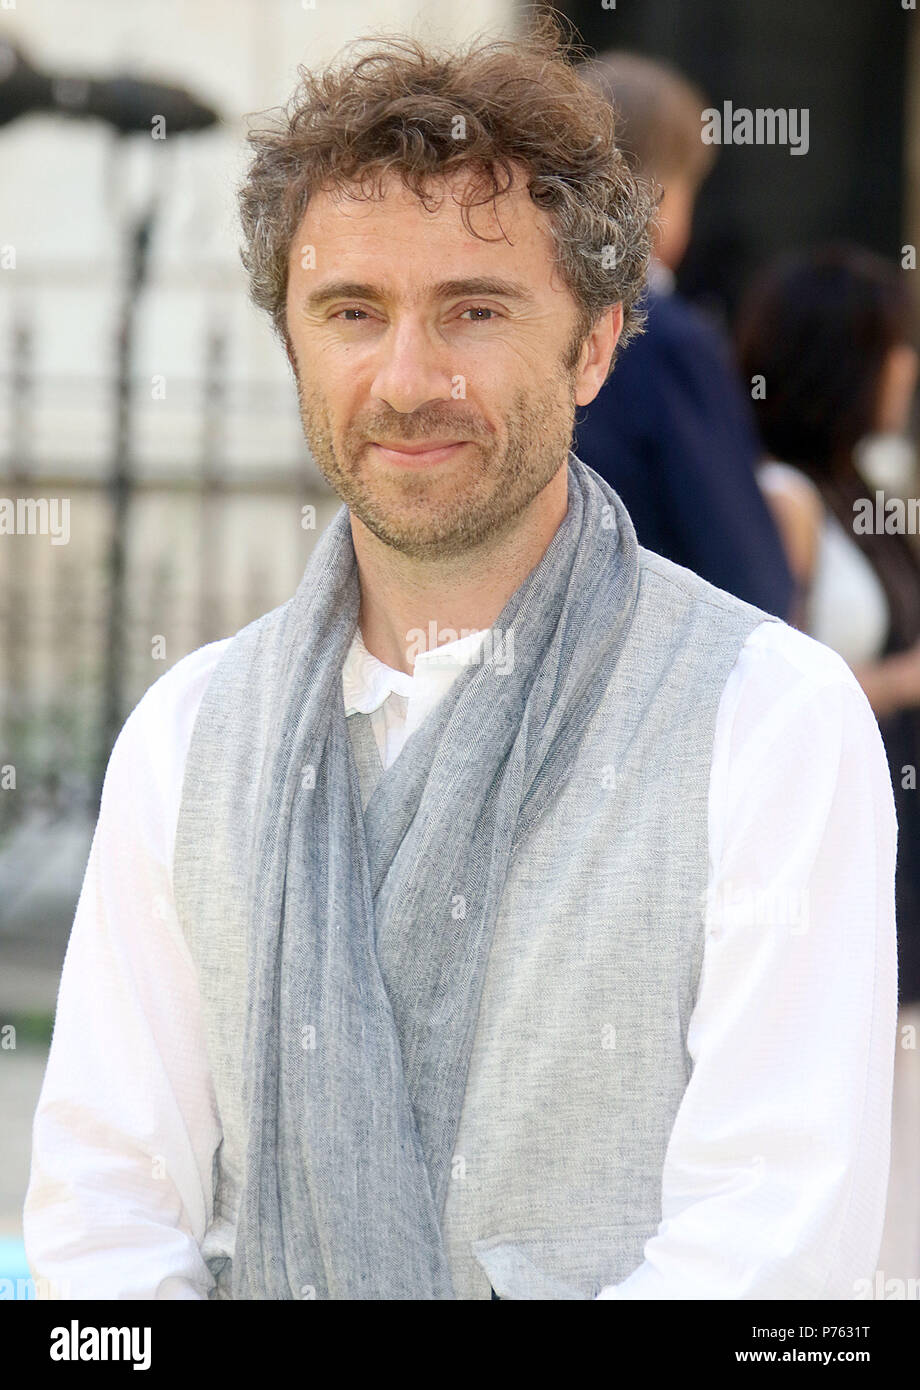 Jun 06, 2018 - Thomas Heatherwick attending Royal Academy Of Arts 250th Summer Exhibition Preview Party at Burlington House in London, England, UK - Stock Image